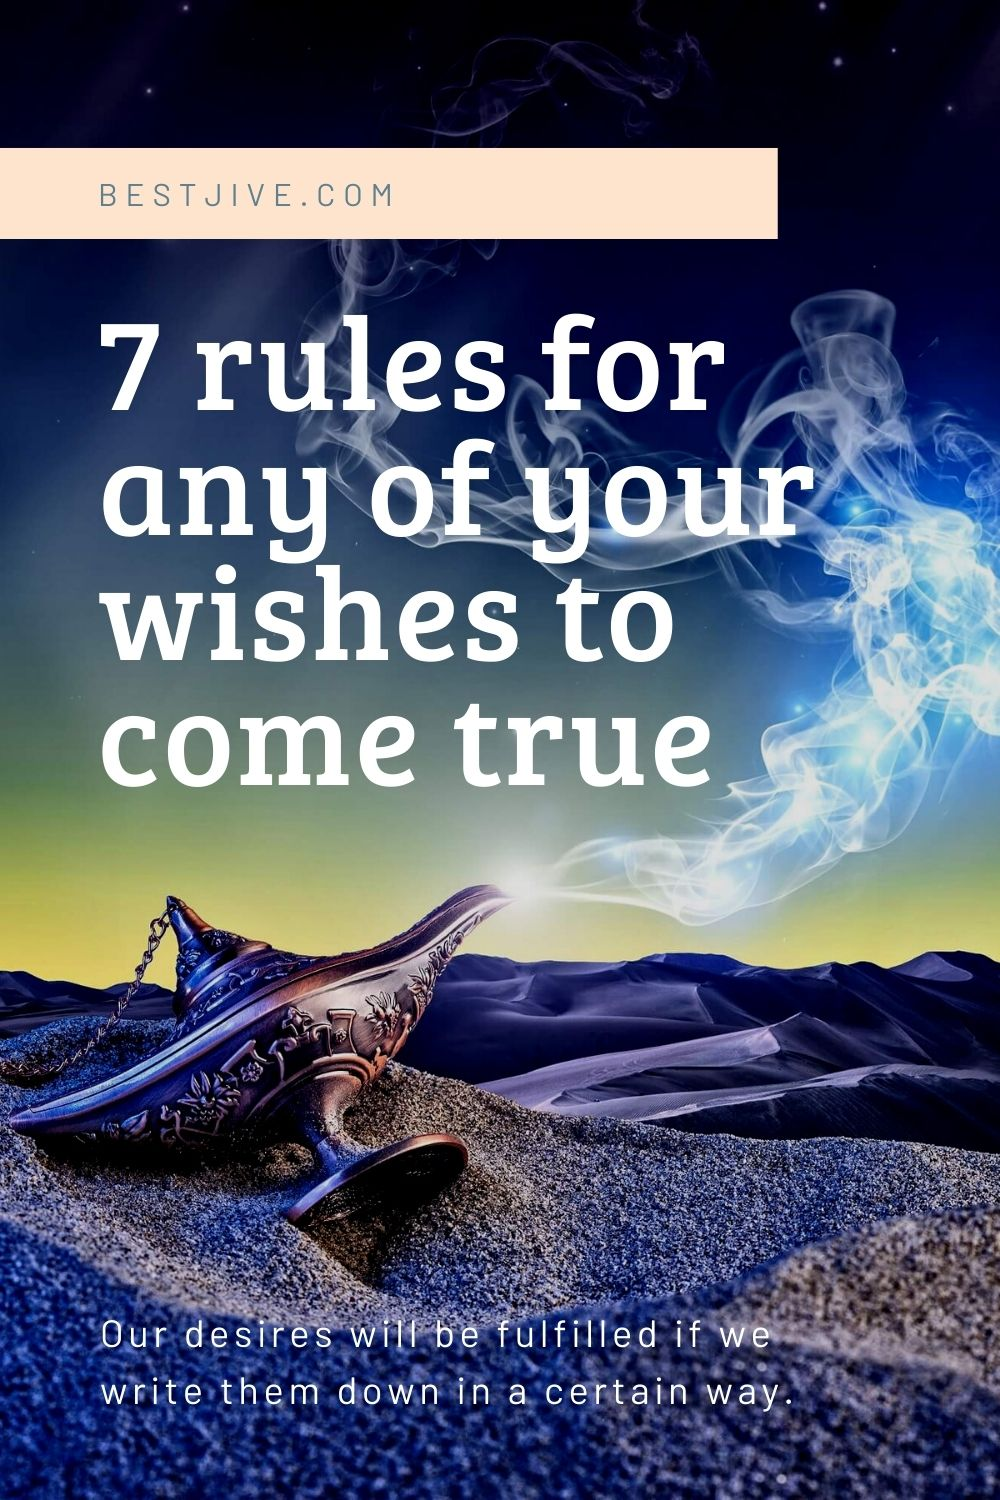 7 rules for any of your wishes to come true